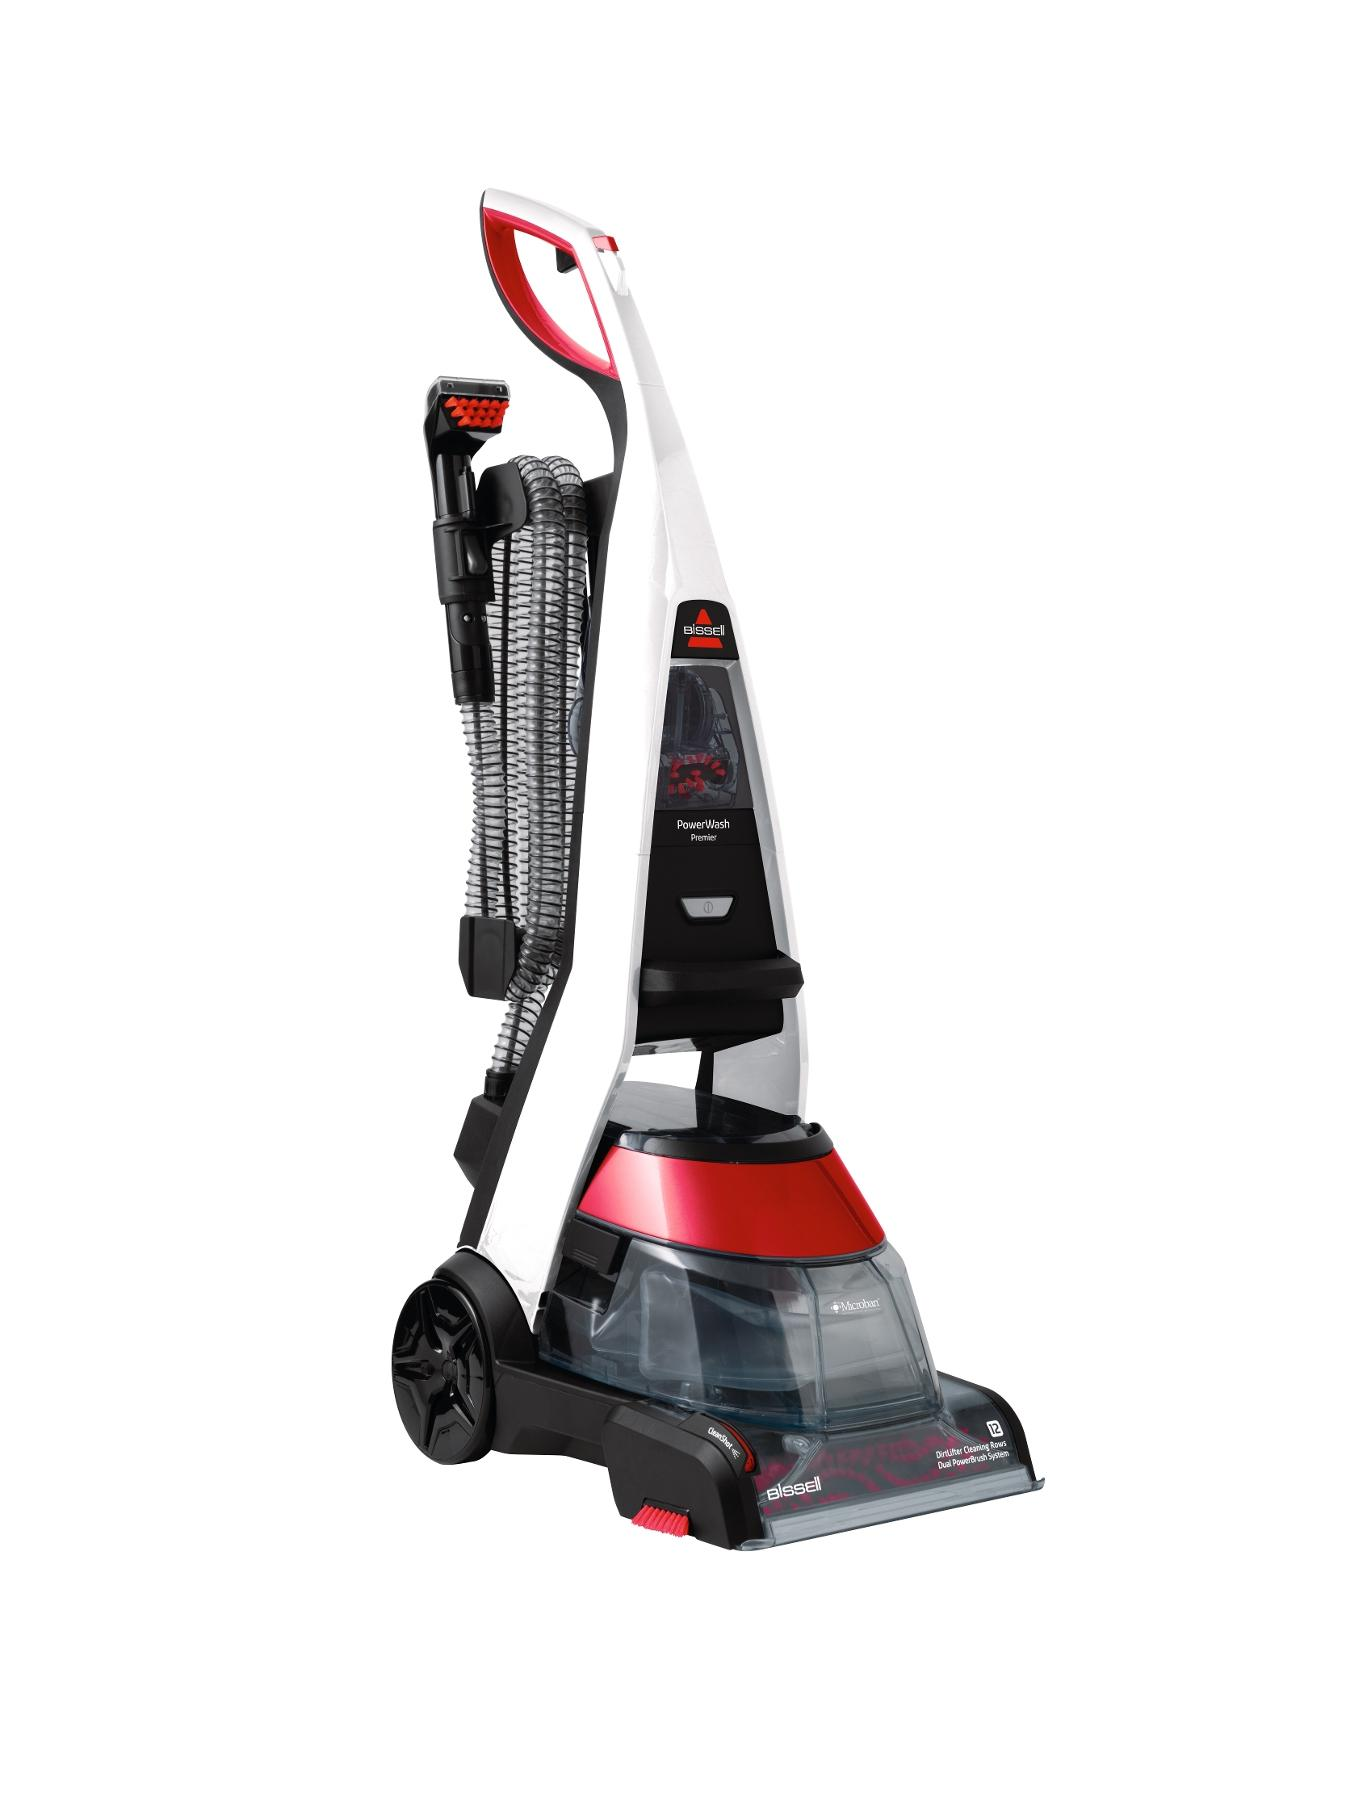 Powerwash Premier Carpet Washer